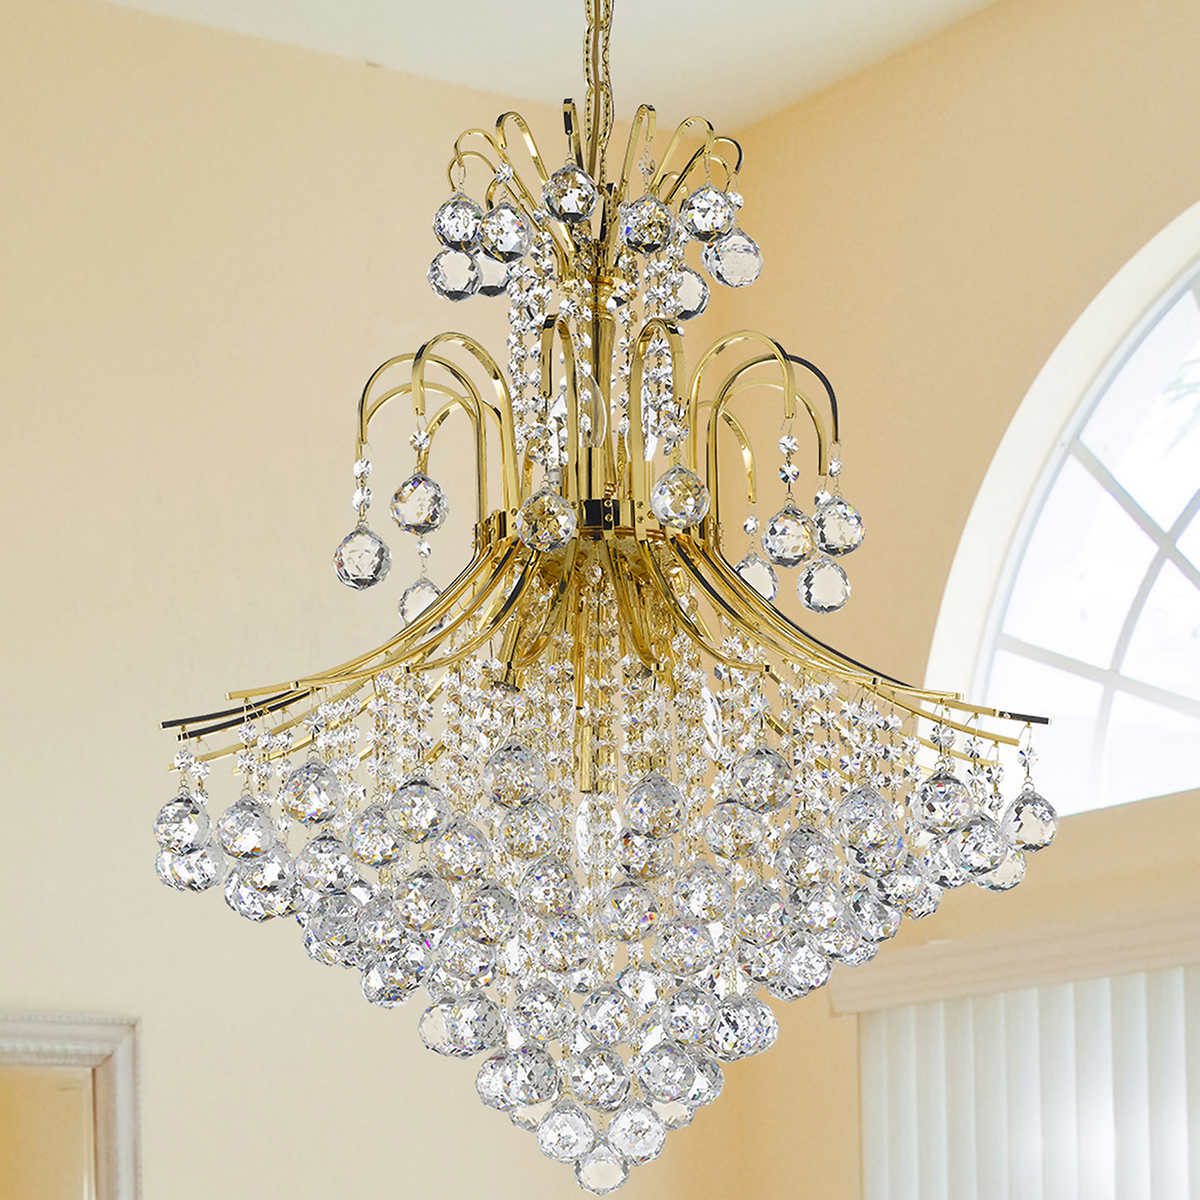 Lighting by pecaso contour gold chandelier 15 lights 1 1 mozeypictures Image collections